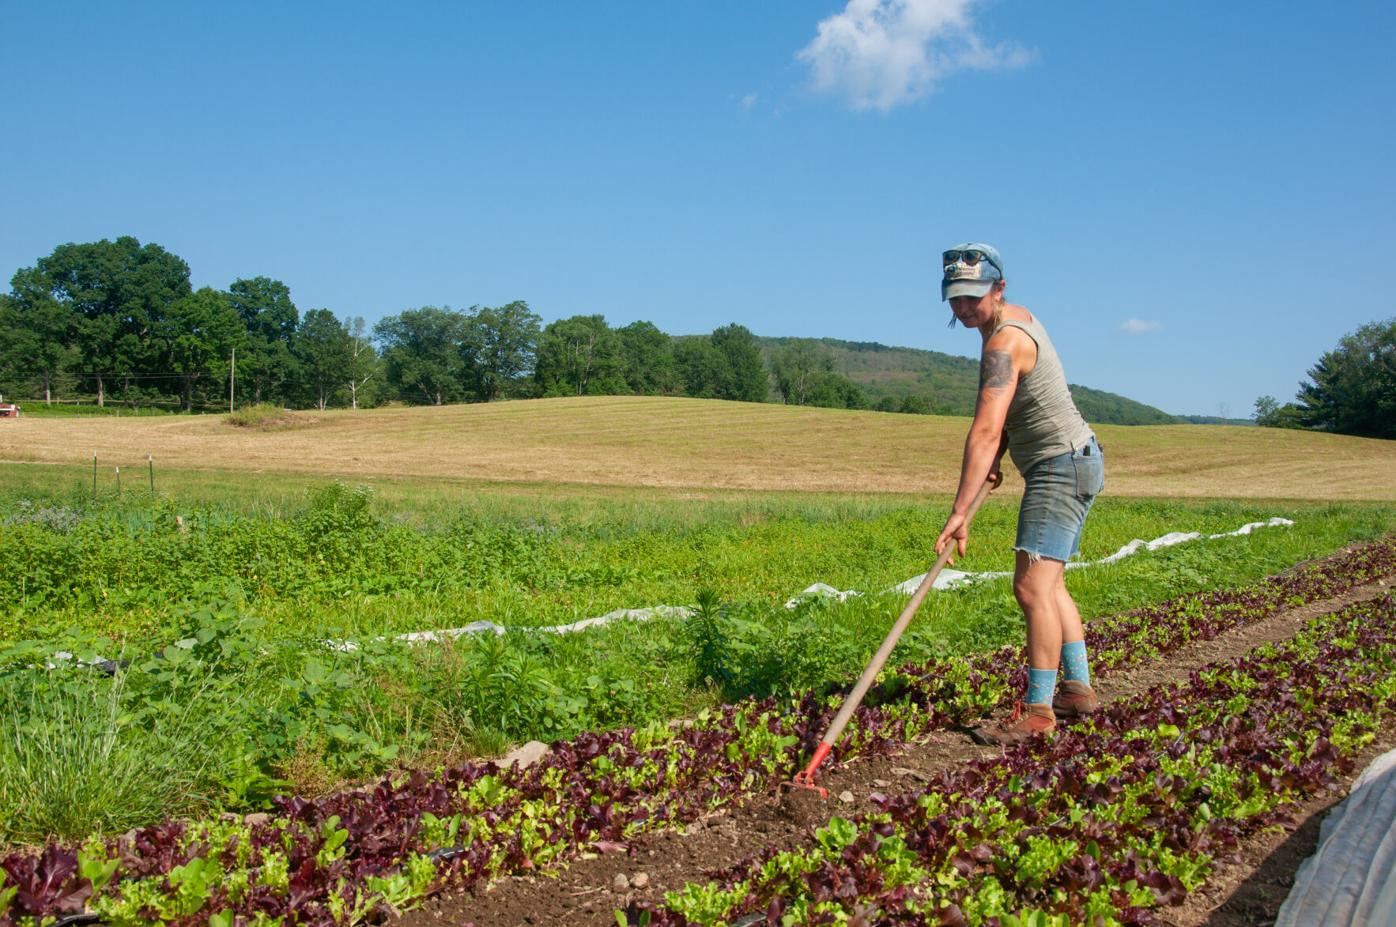 Molly Comstock tends the fields at Colfax Farm.